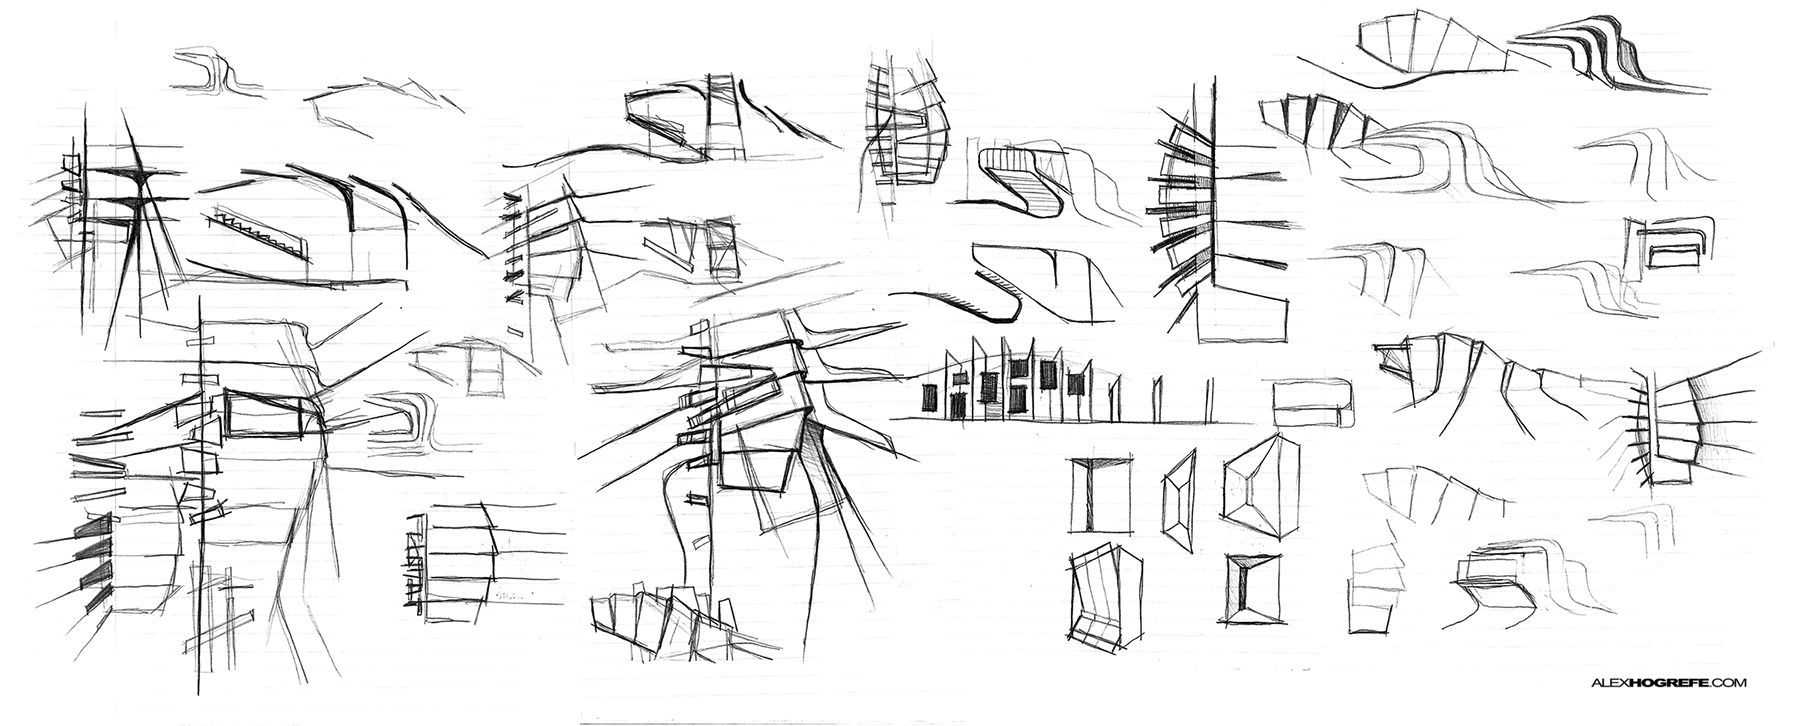 Architect Design Sketches architecture design sketch - google search | design sketches